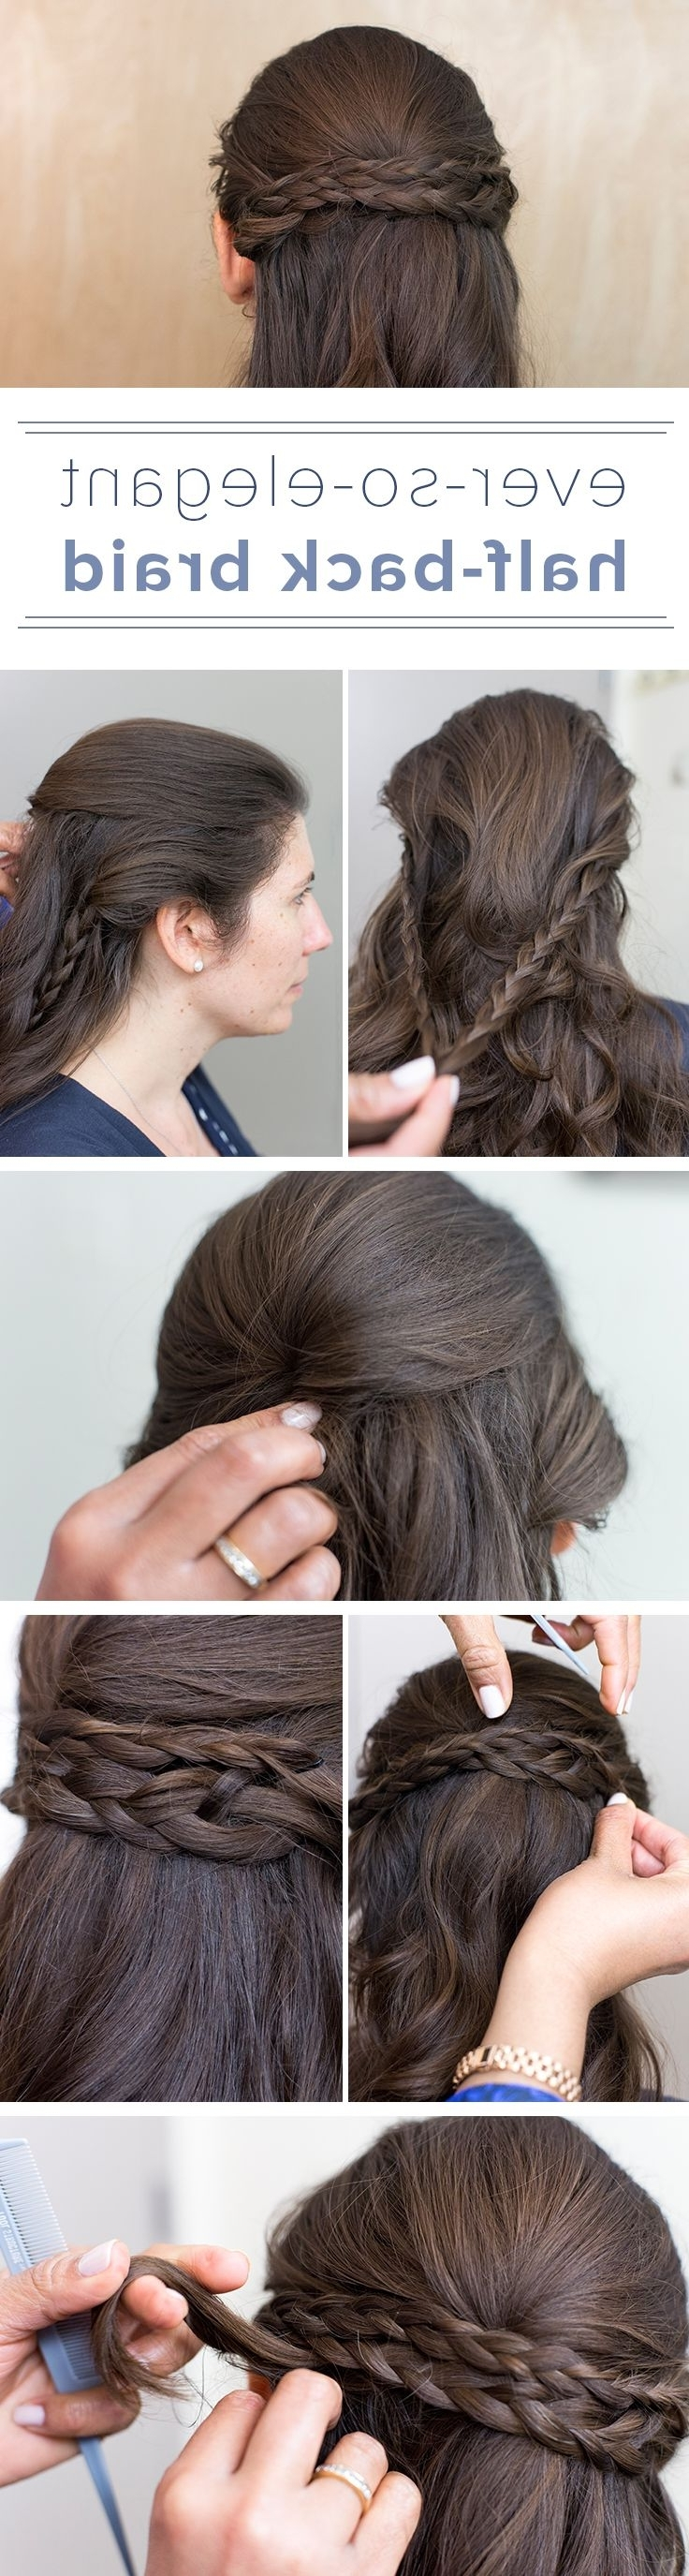 Well Liked Braids And Waves For Any Occasion With Regard To Ultimate Guide To Braids For Every Event And Occasion (View 7 of 15)